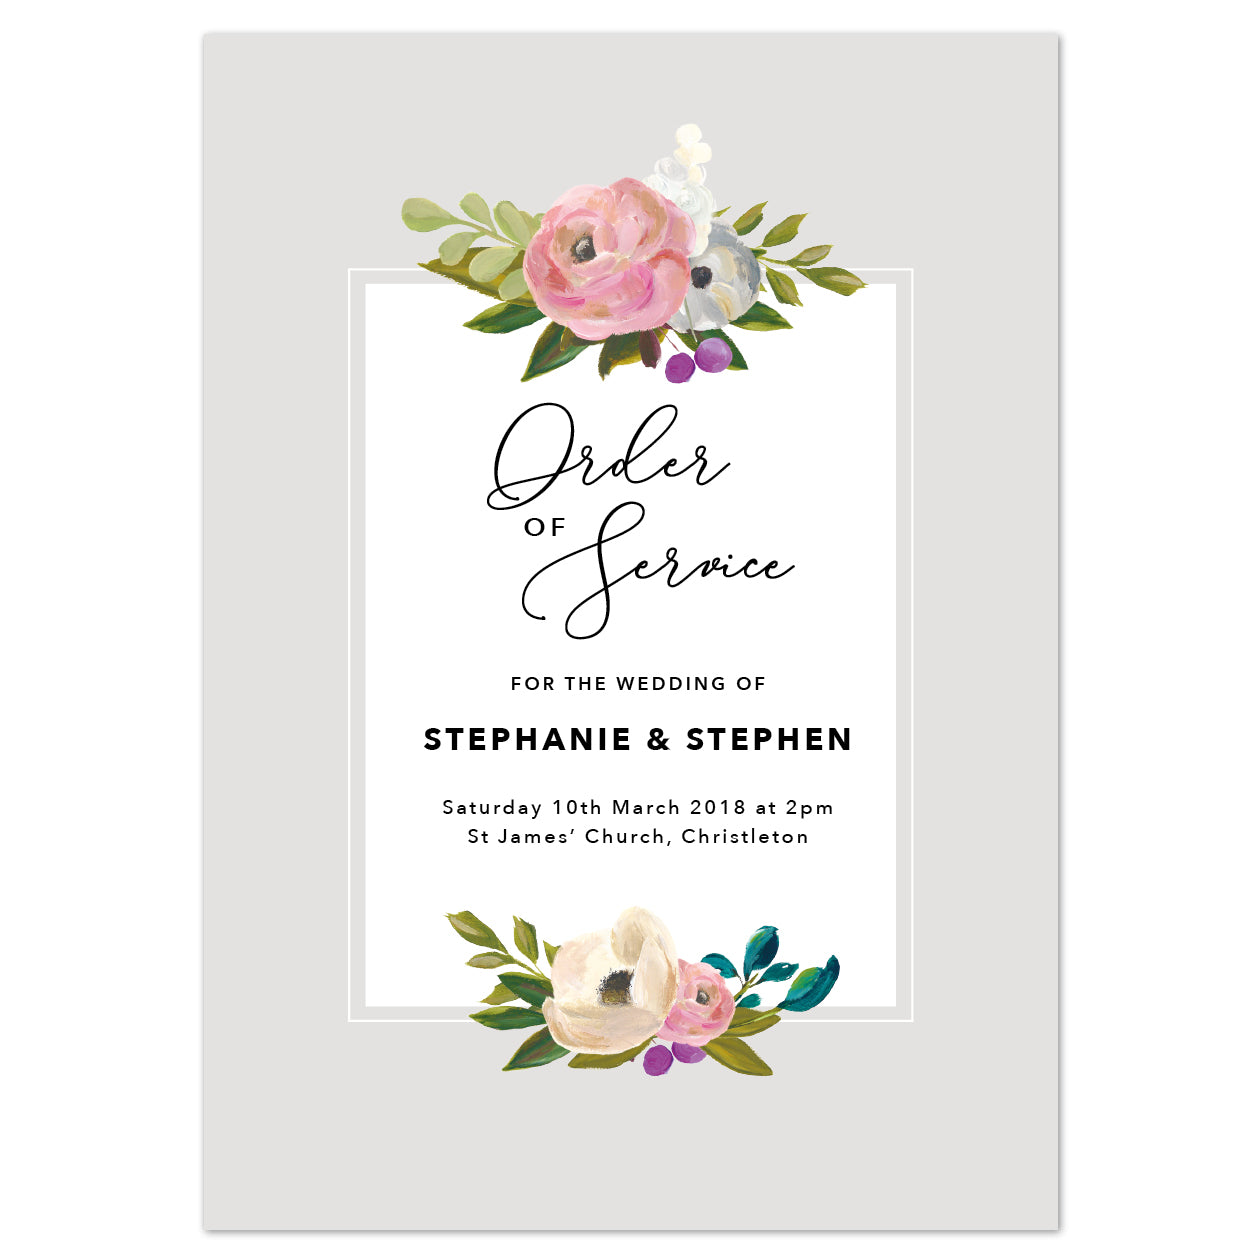 Sadie Order of Service booklets